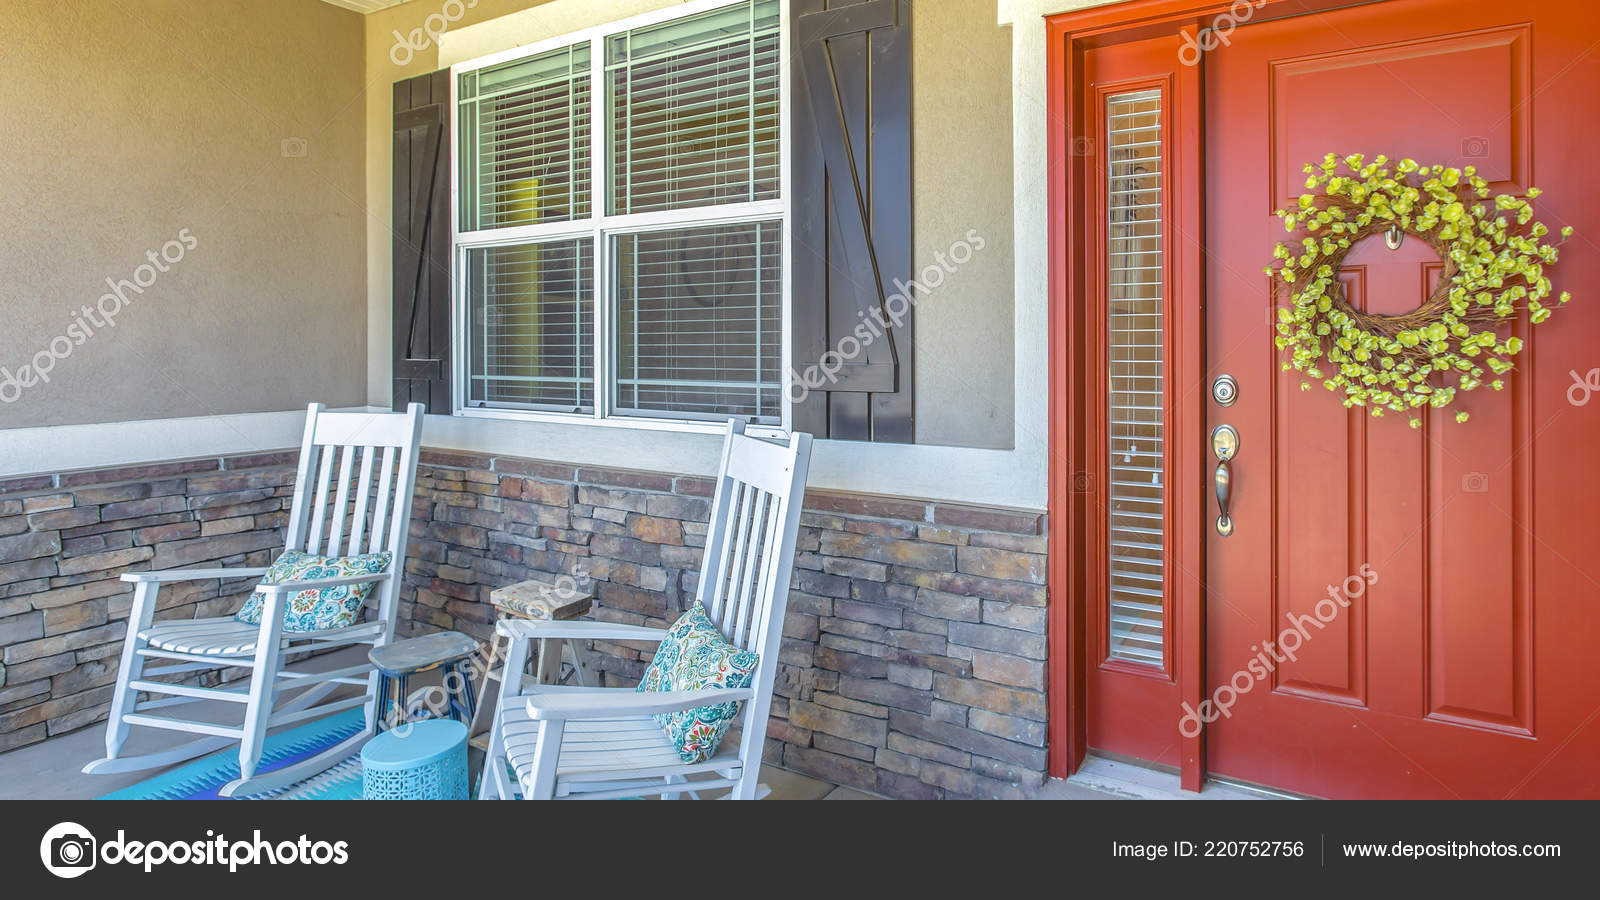 Red Front Door With Wreath And Chairs On Porch Stock Photo